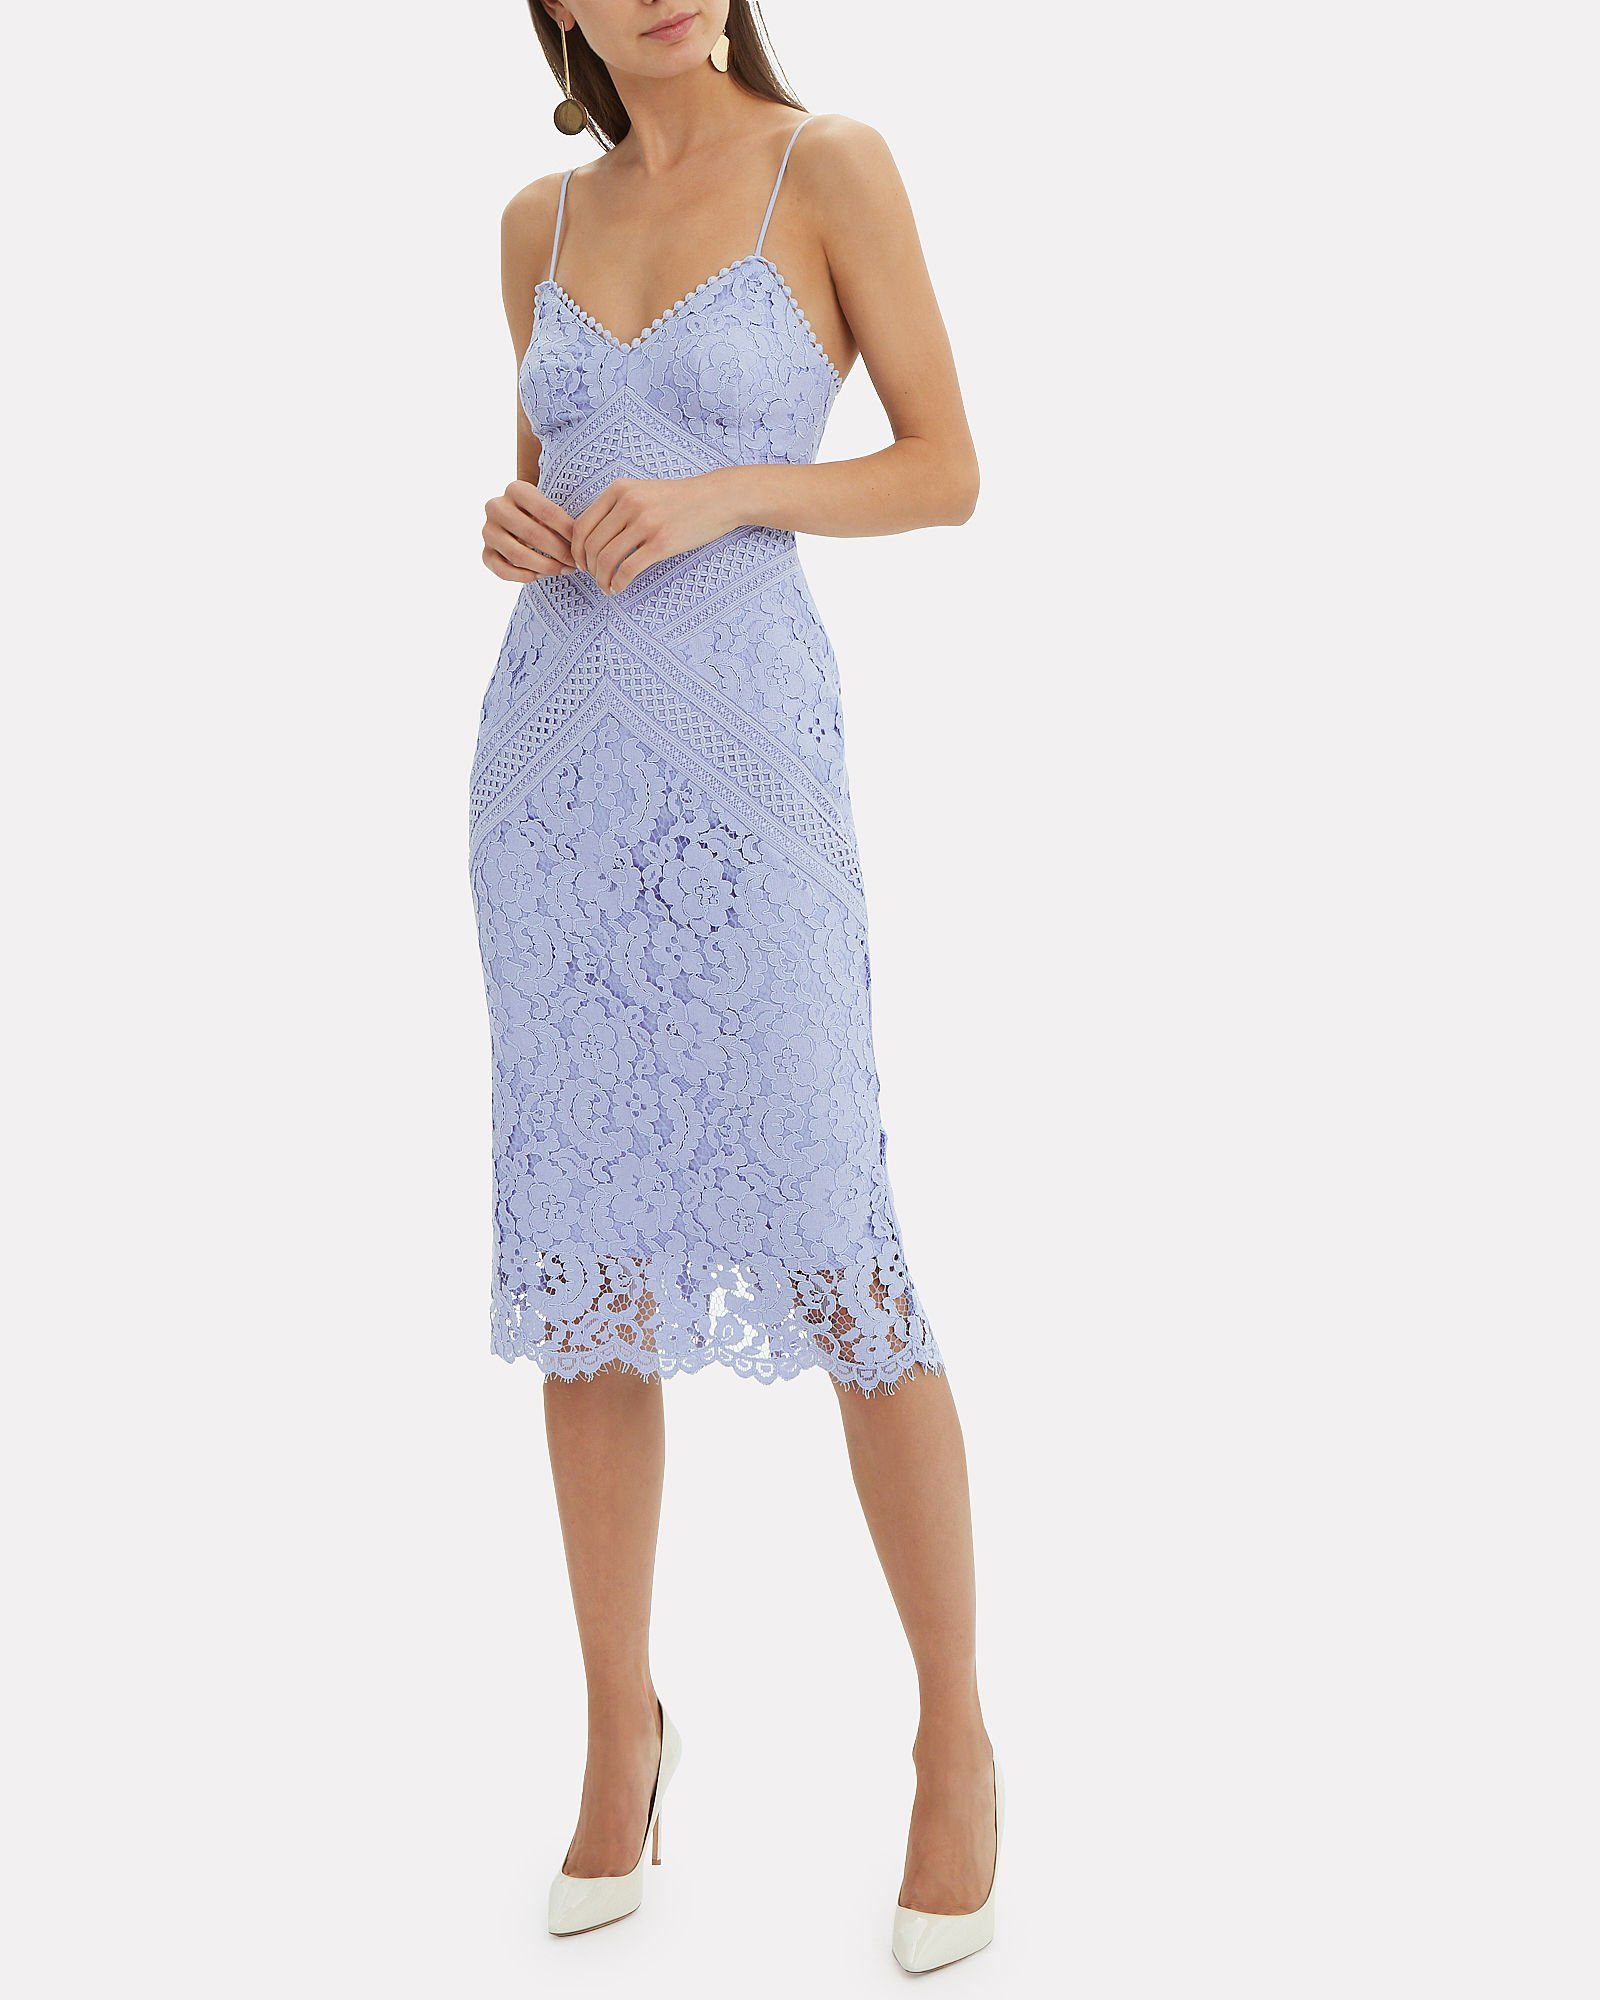 d30a03e20663 Melody Lace Dress, BLUE-LT, hi-res | Rehearsal Dinner Outfit in 2019 ...